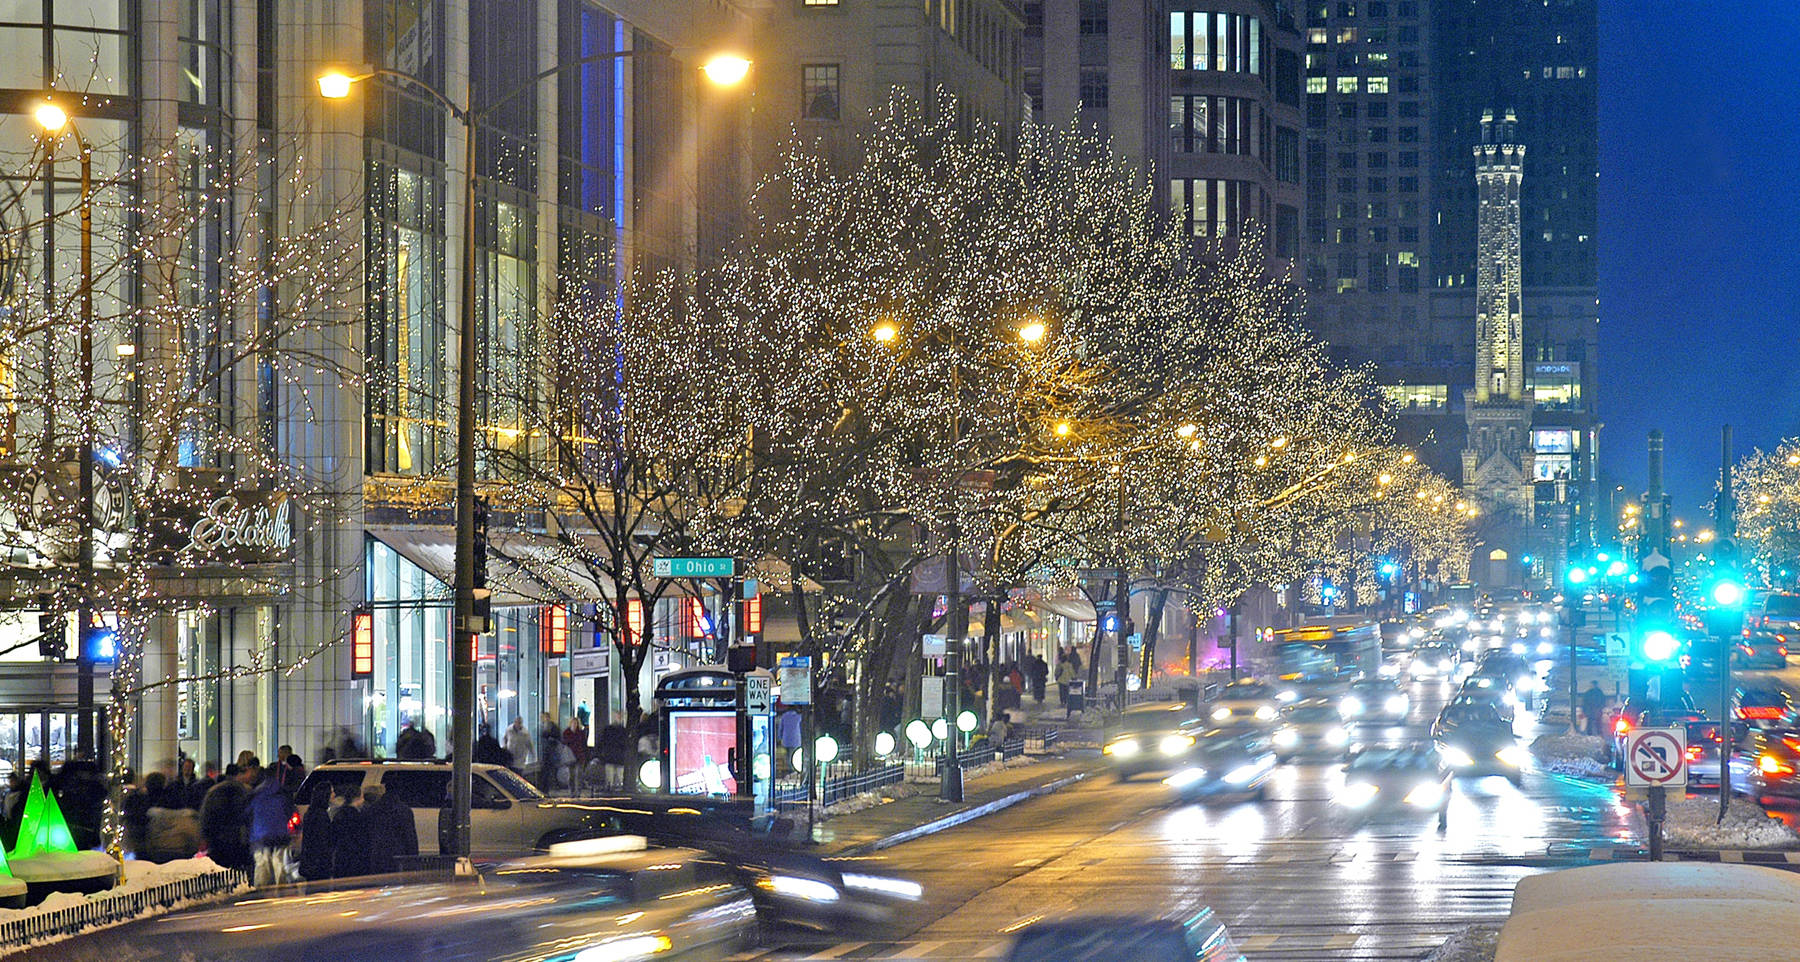 Christmas In Chicago Images.In The Christmas Spirit Top 5 Chicago Sports Moments On